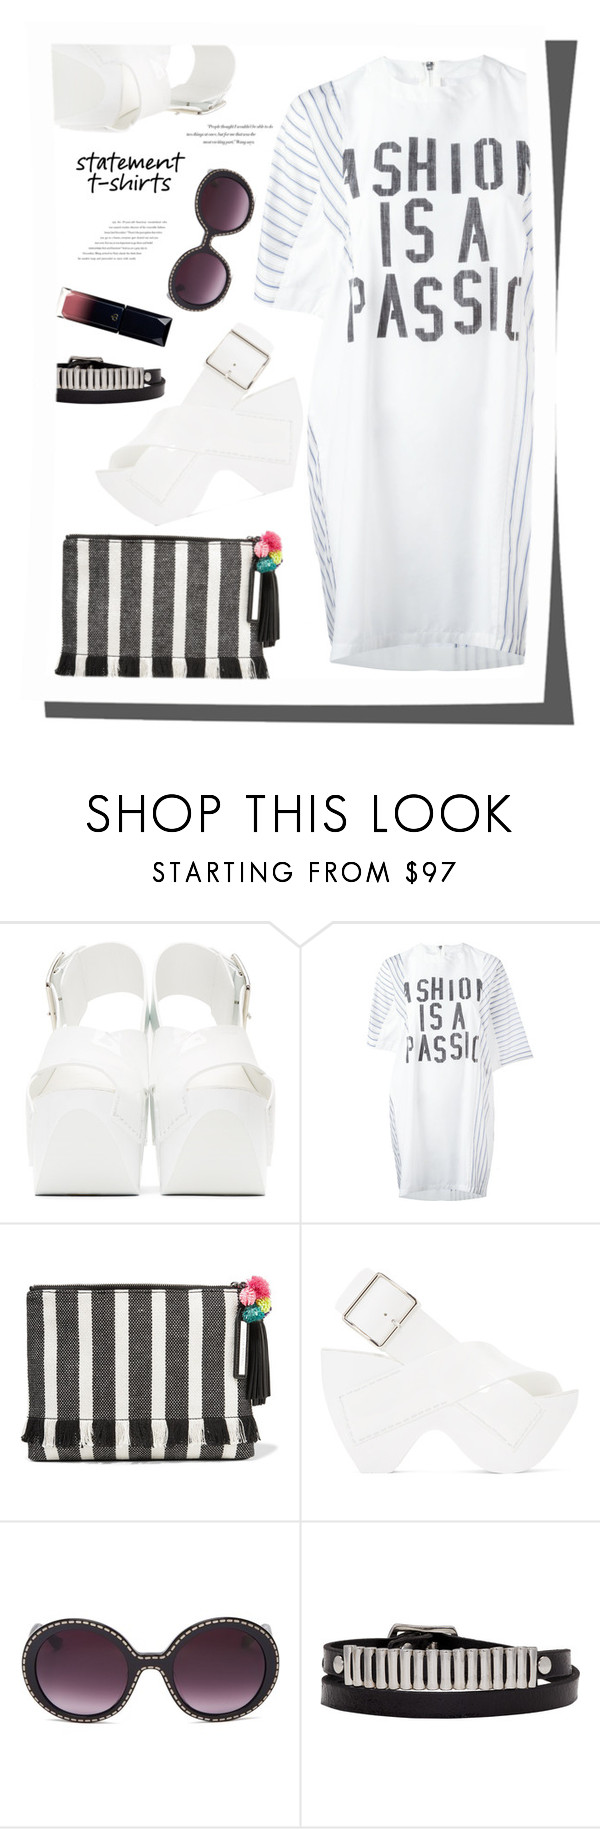 """Slogan T-Shirts"" by joliedy ❤ liked on Polyvore featuring Acne Studios, Sacai, Loeffler Randall, Moschino, Balenciaga, Lacoste and McQ by Alexander McQueen"